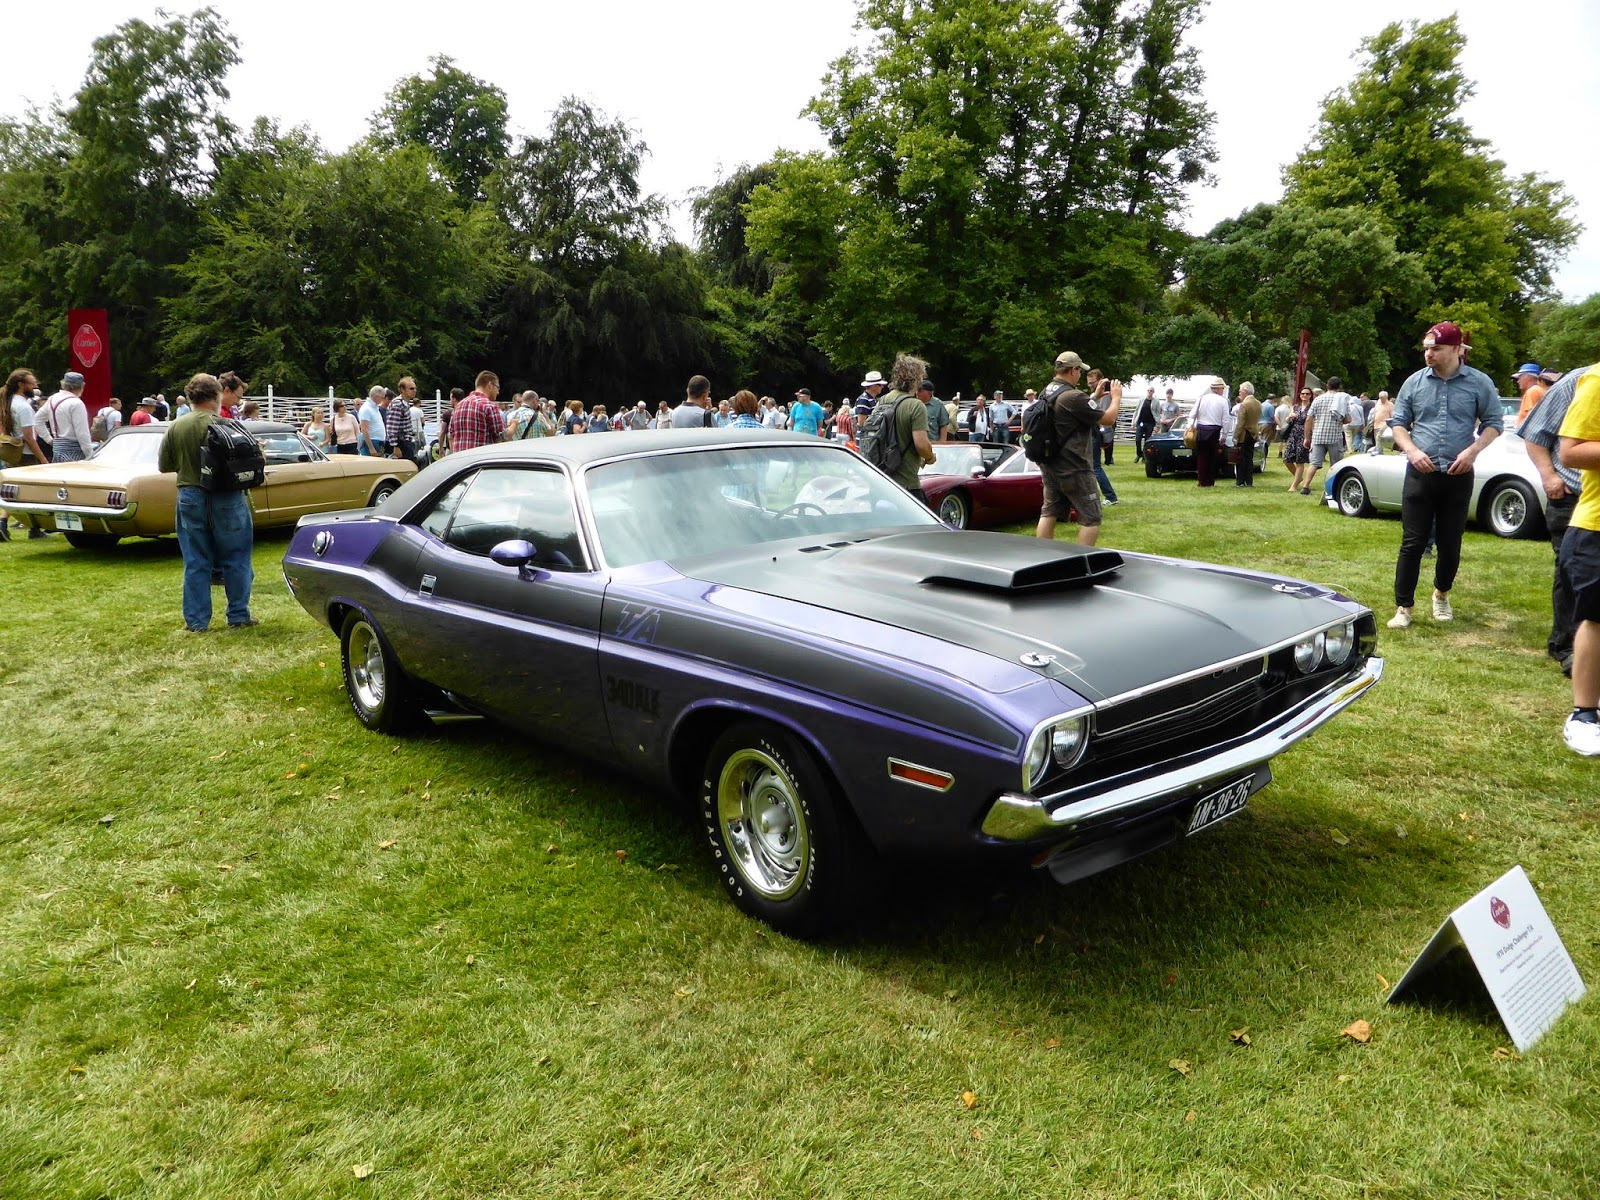 Plymouth Barracuda in the Cartier paddock in front of the house